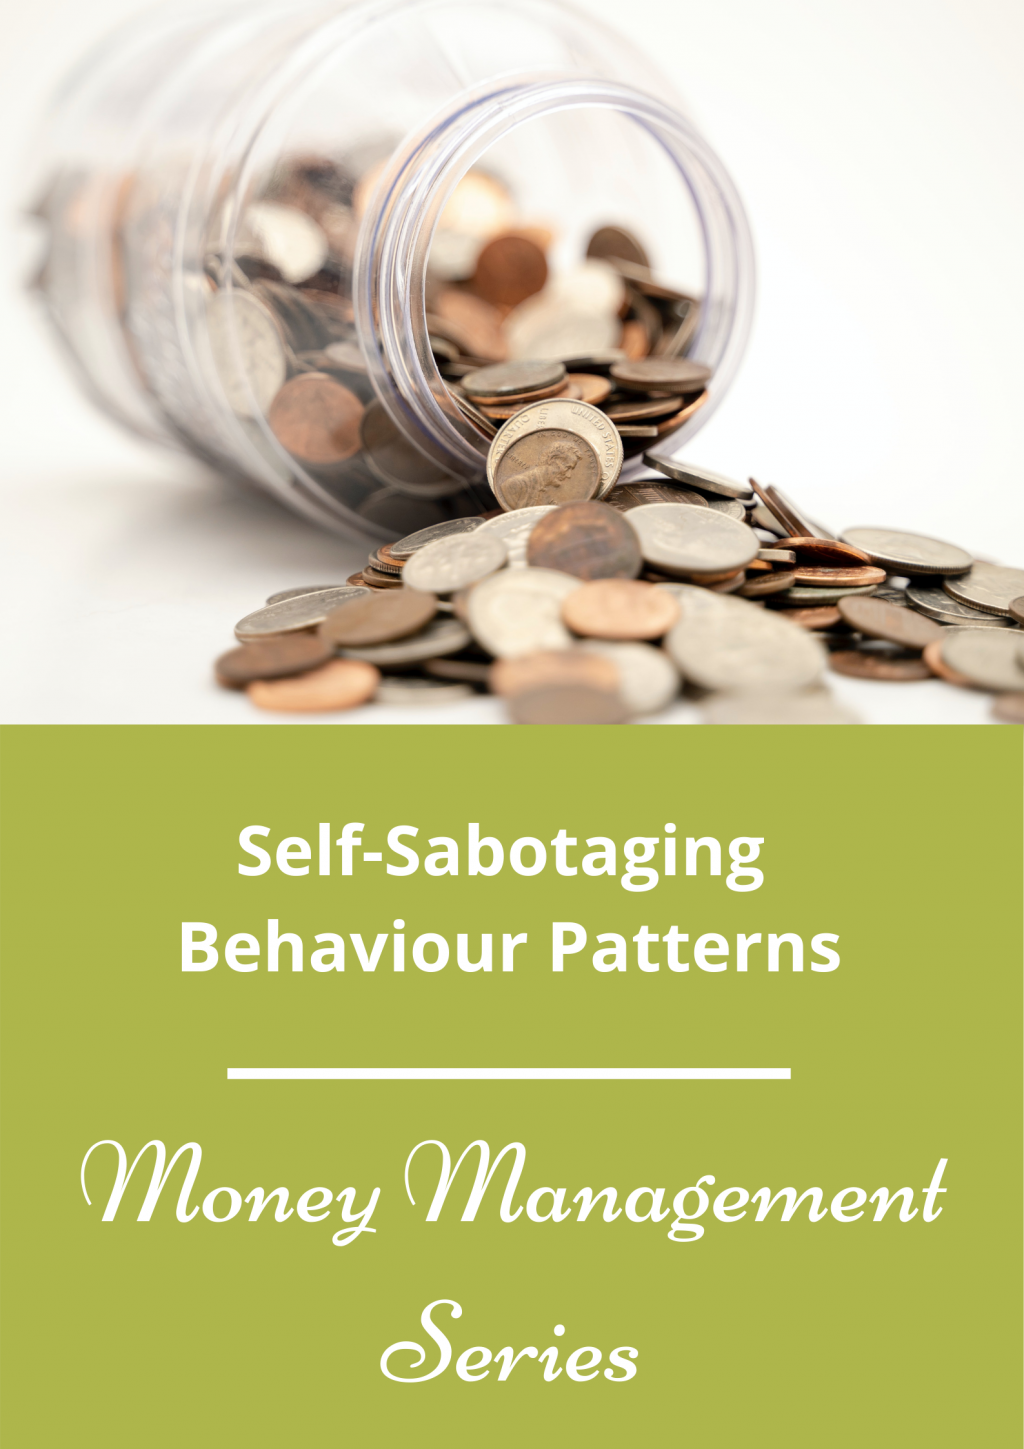 Self-Sabotaging Behaviour PatternsSelf-Sabotaging Behaviour Patterns